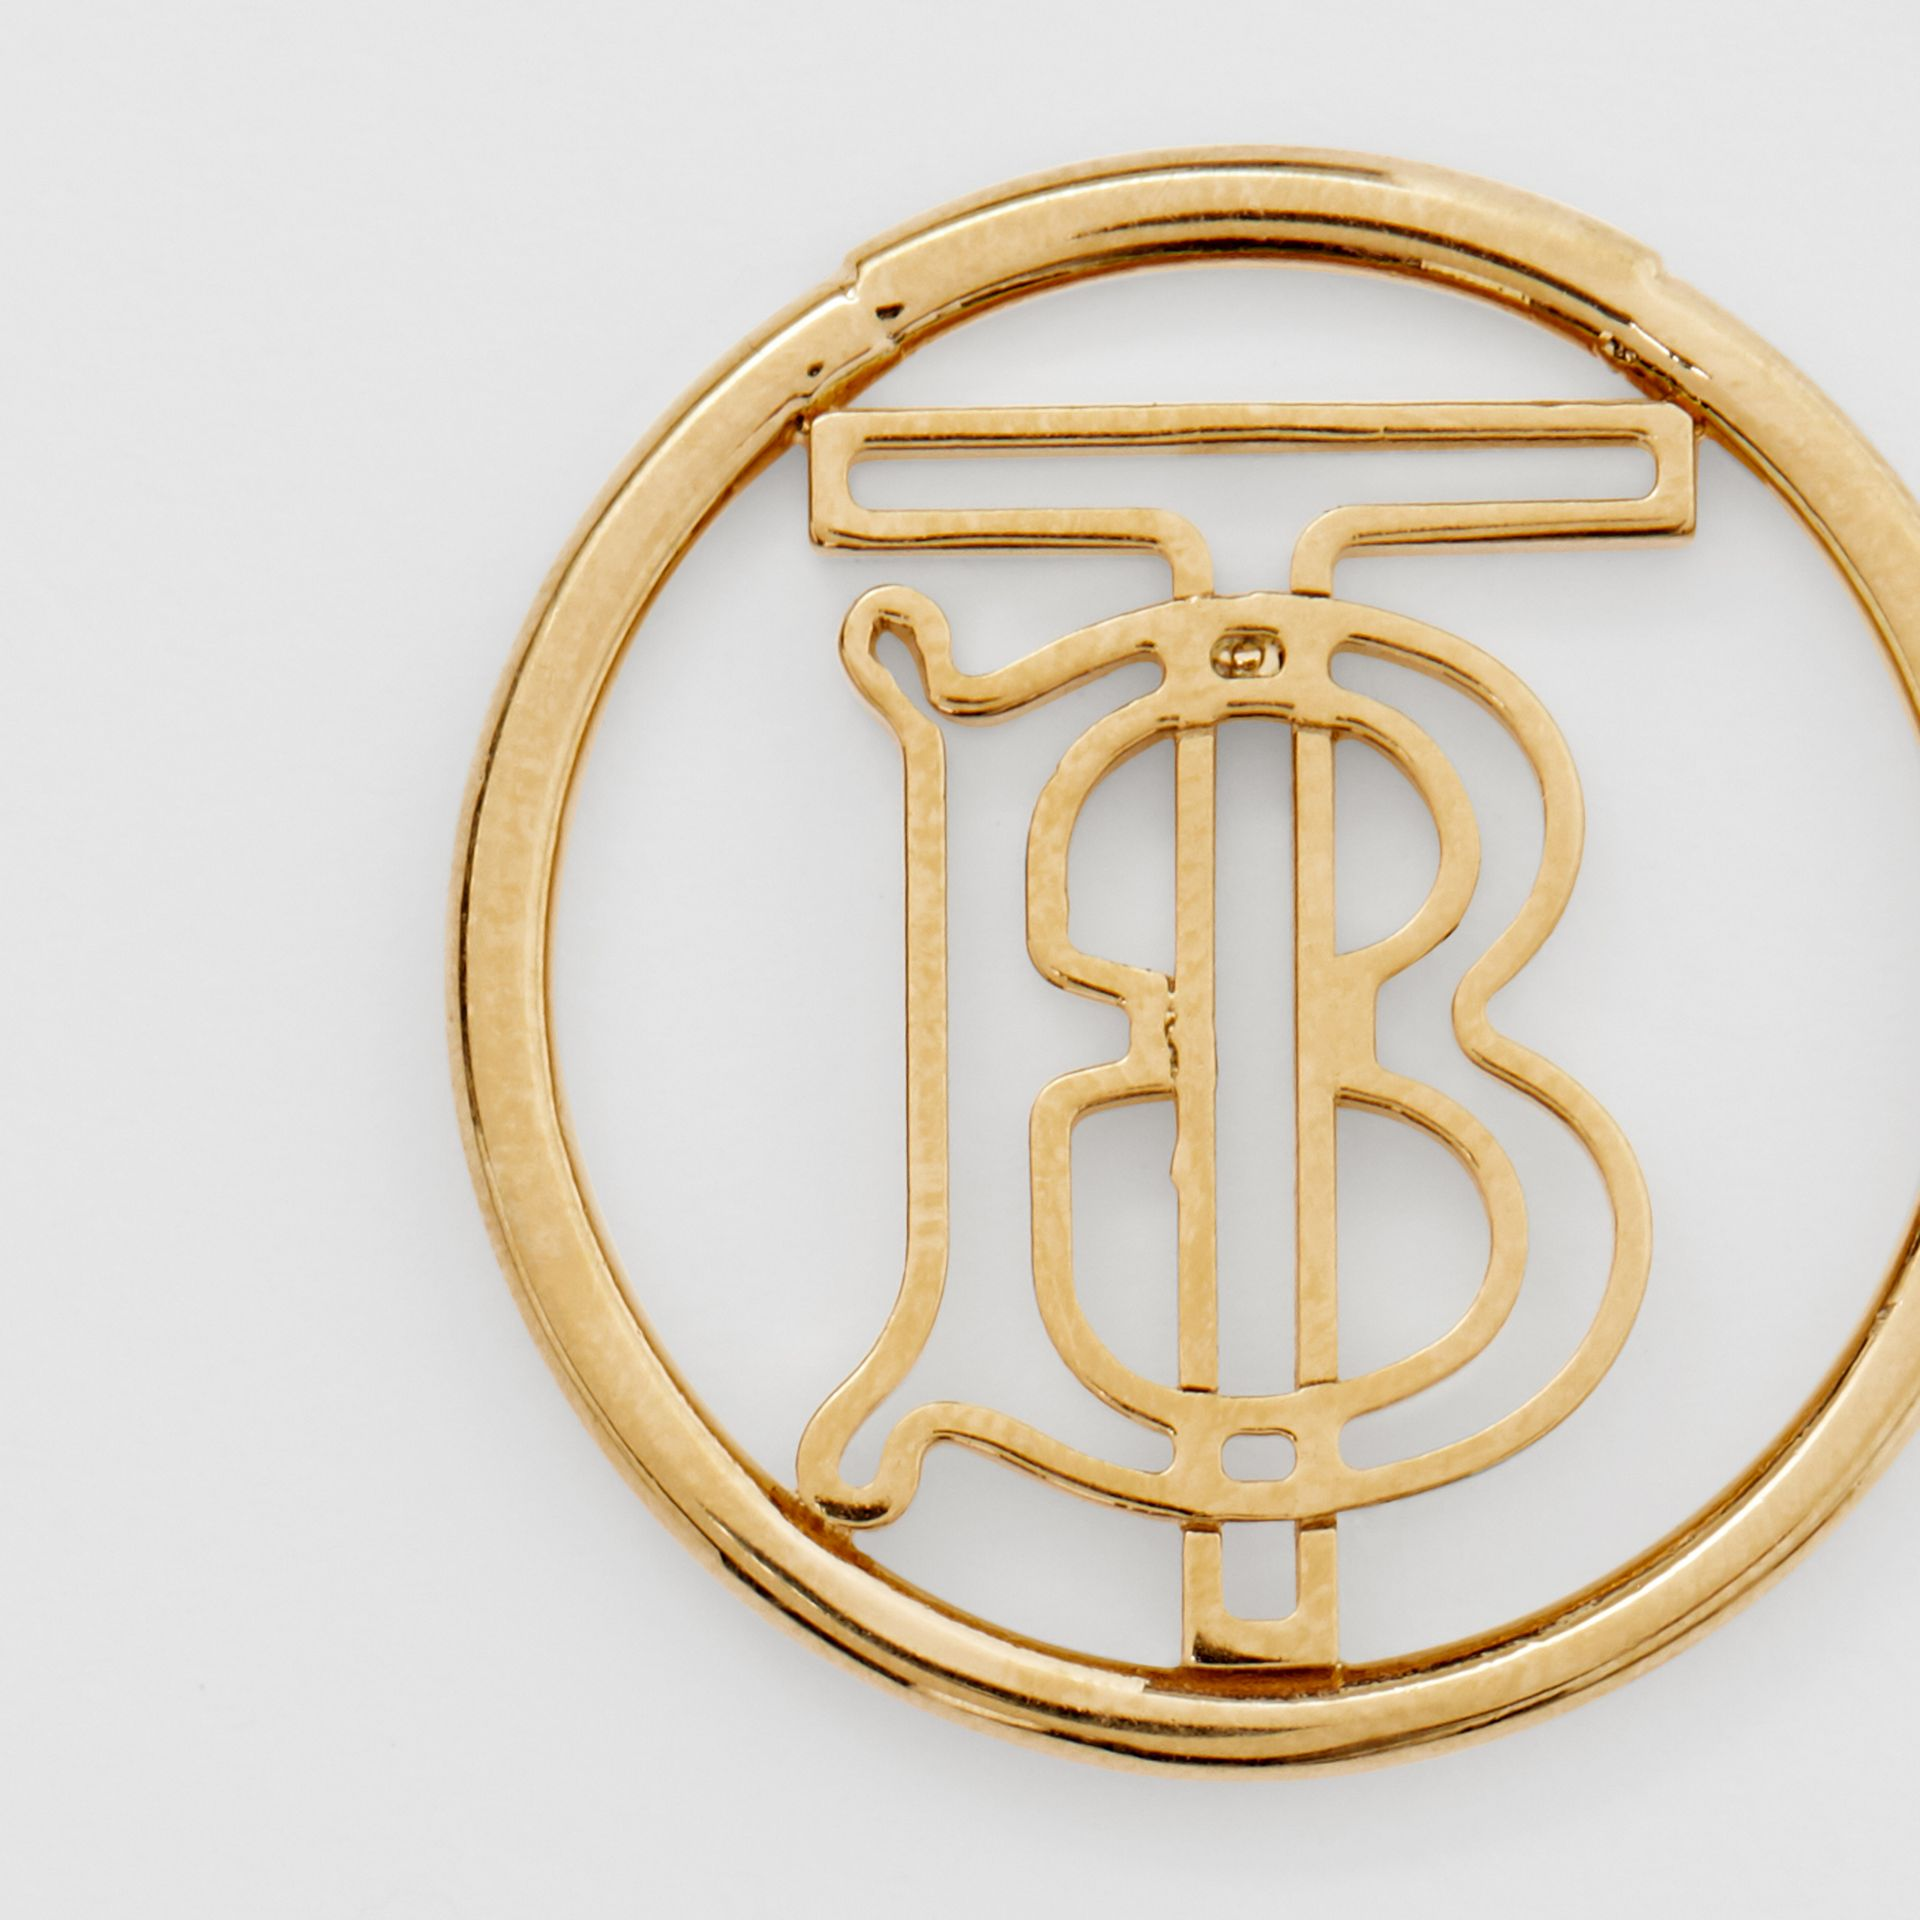 Gold-plated Monogram Motif Earrings in Light - Women | Burberry - gallery image 1